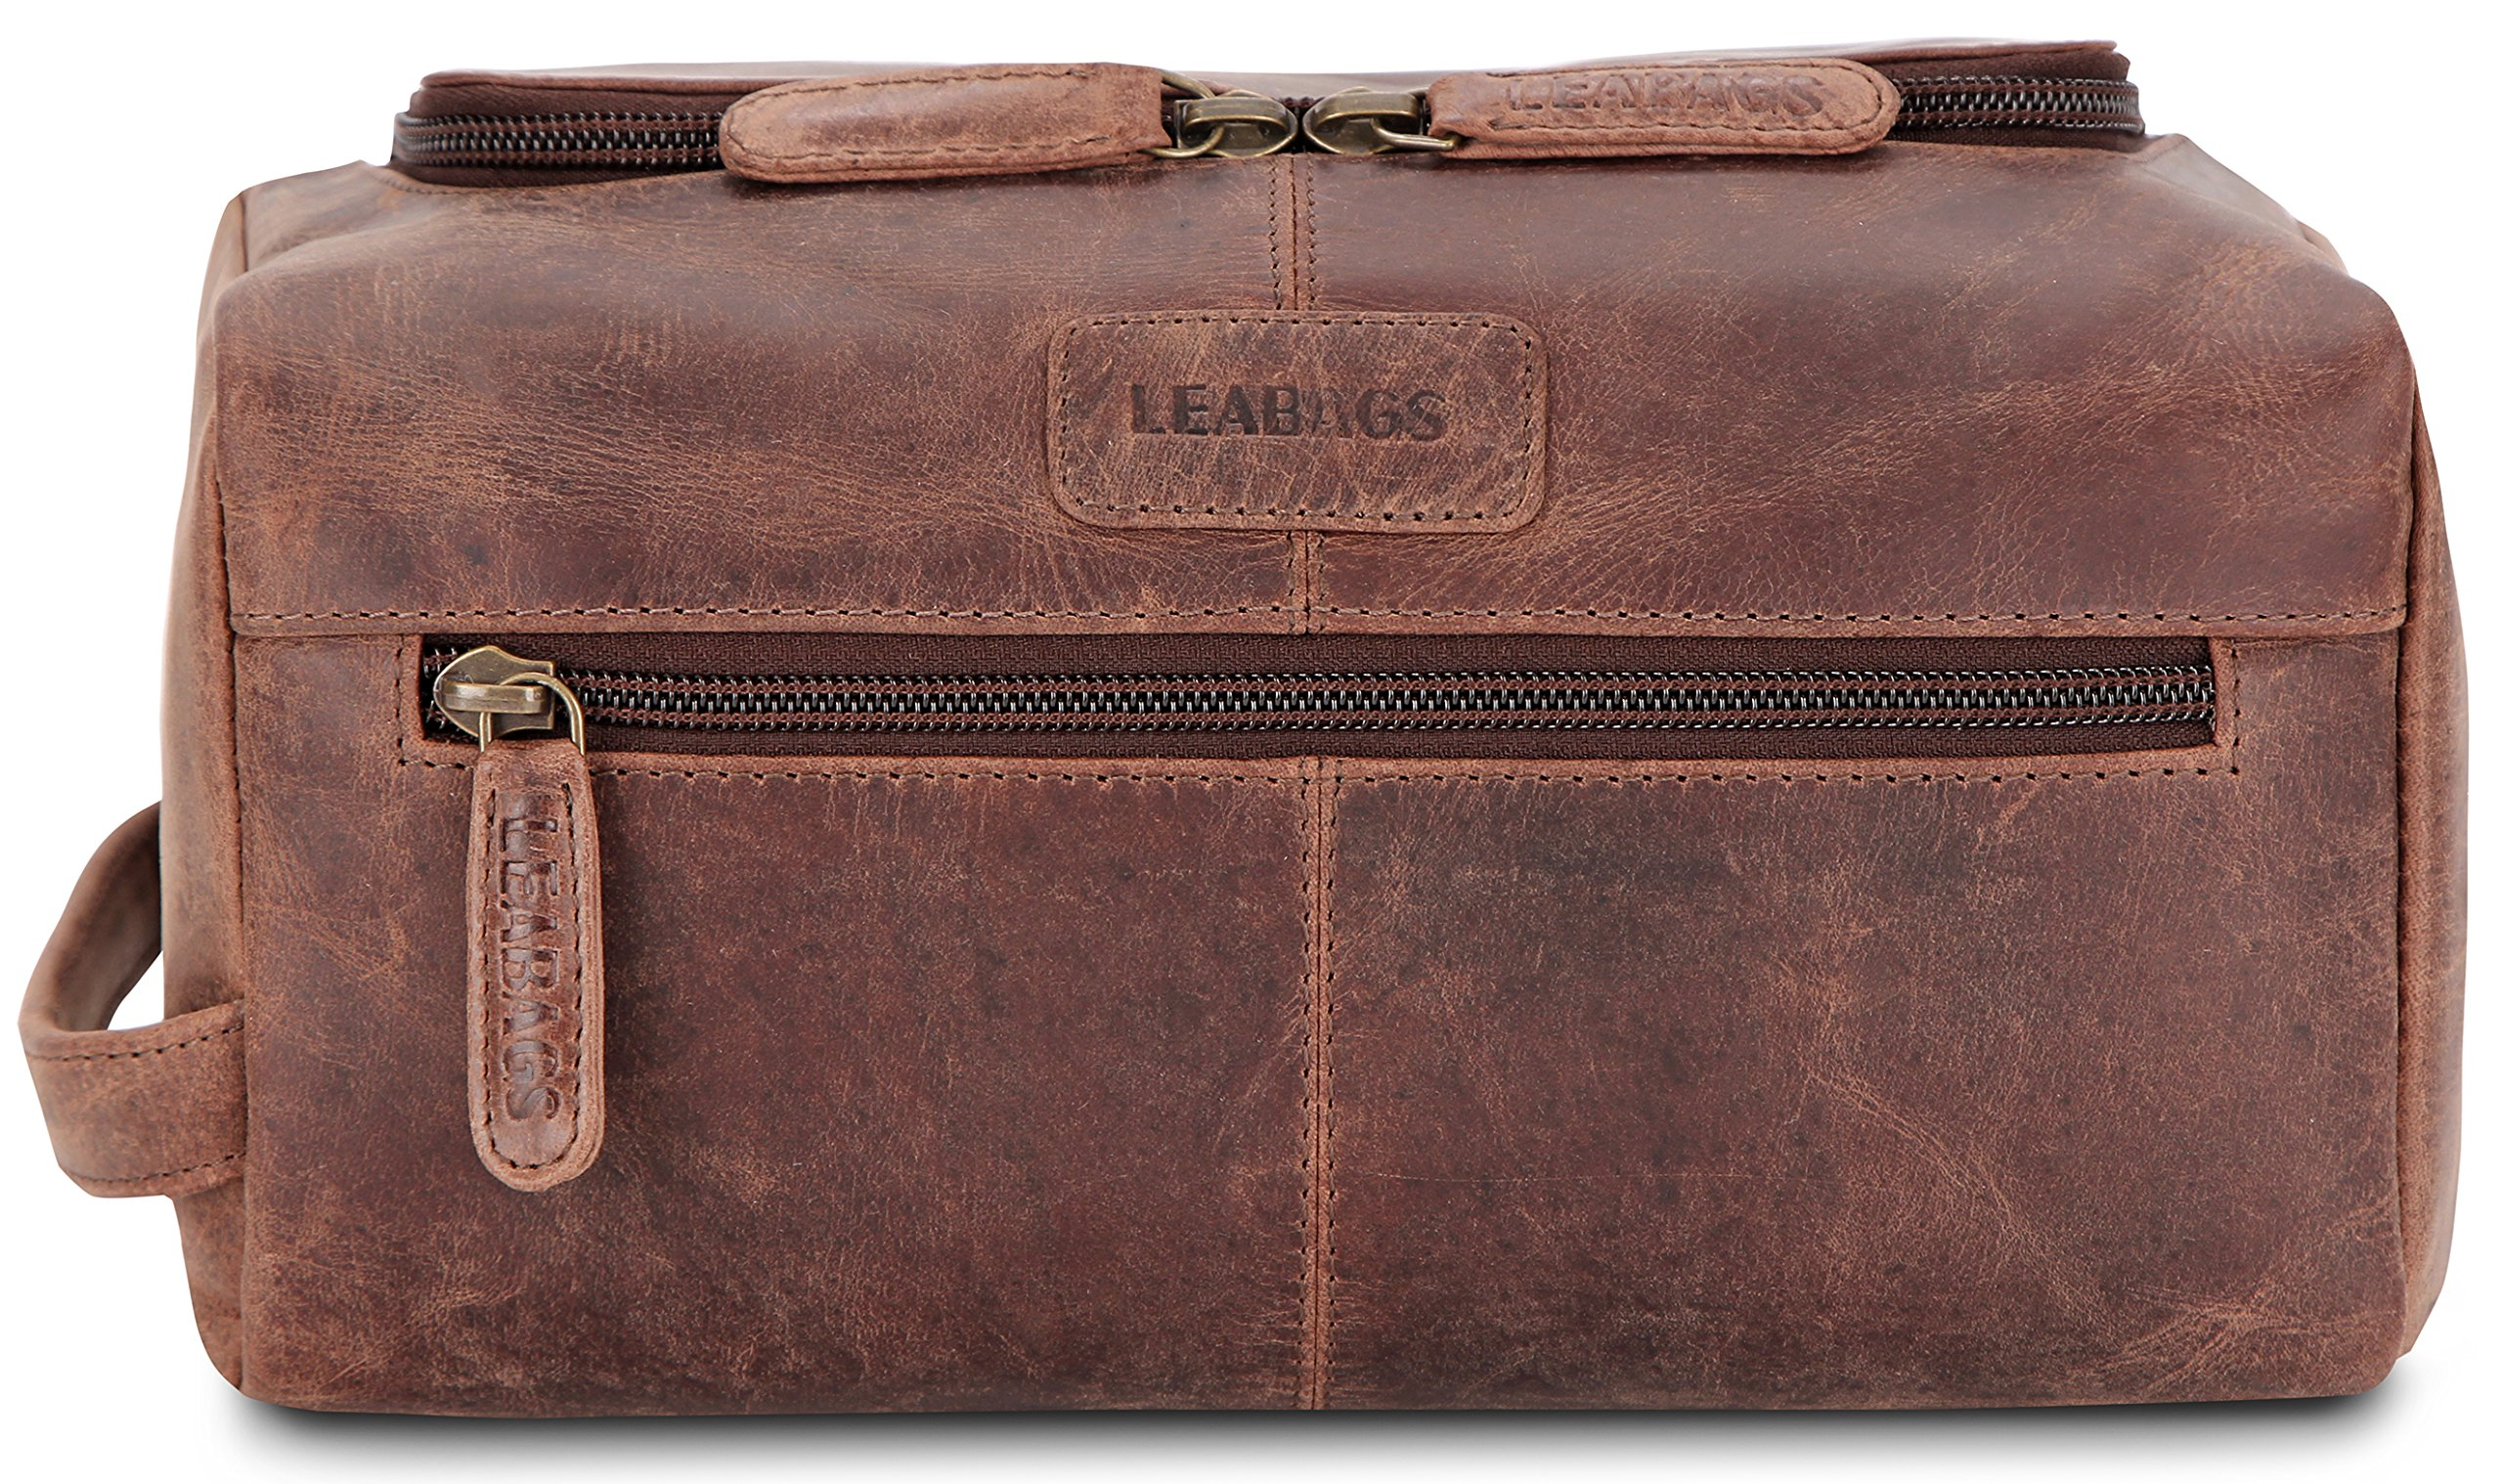 LEABAGS Palm Beach genuine buffalo leather toiletry bag in vintage style - Nutmeg by LEABAGS (Image #1)